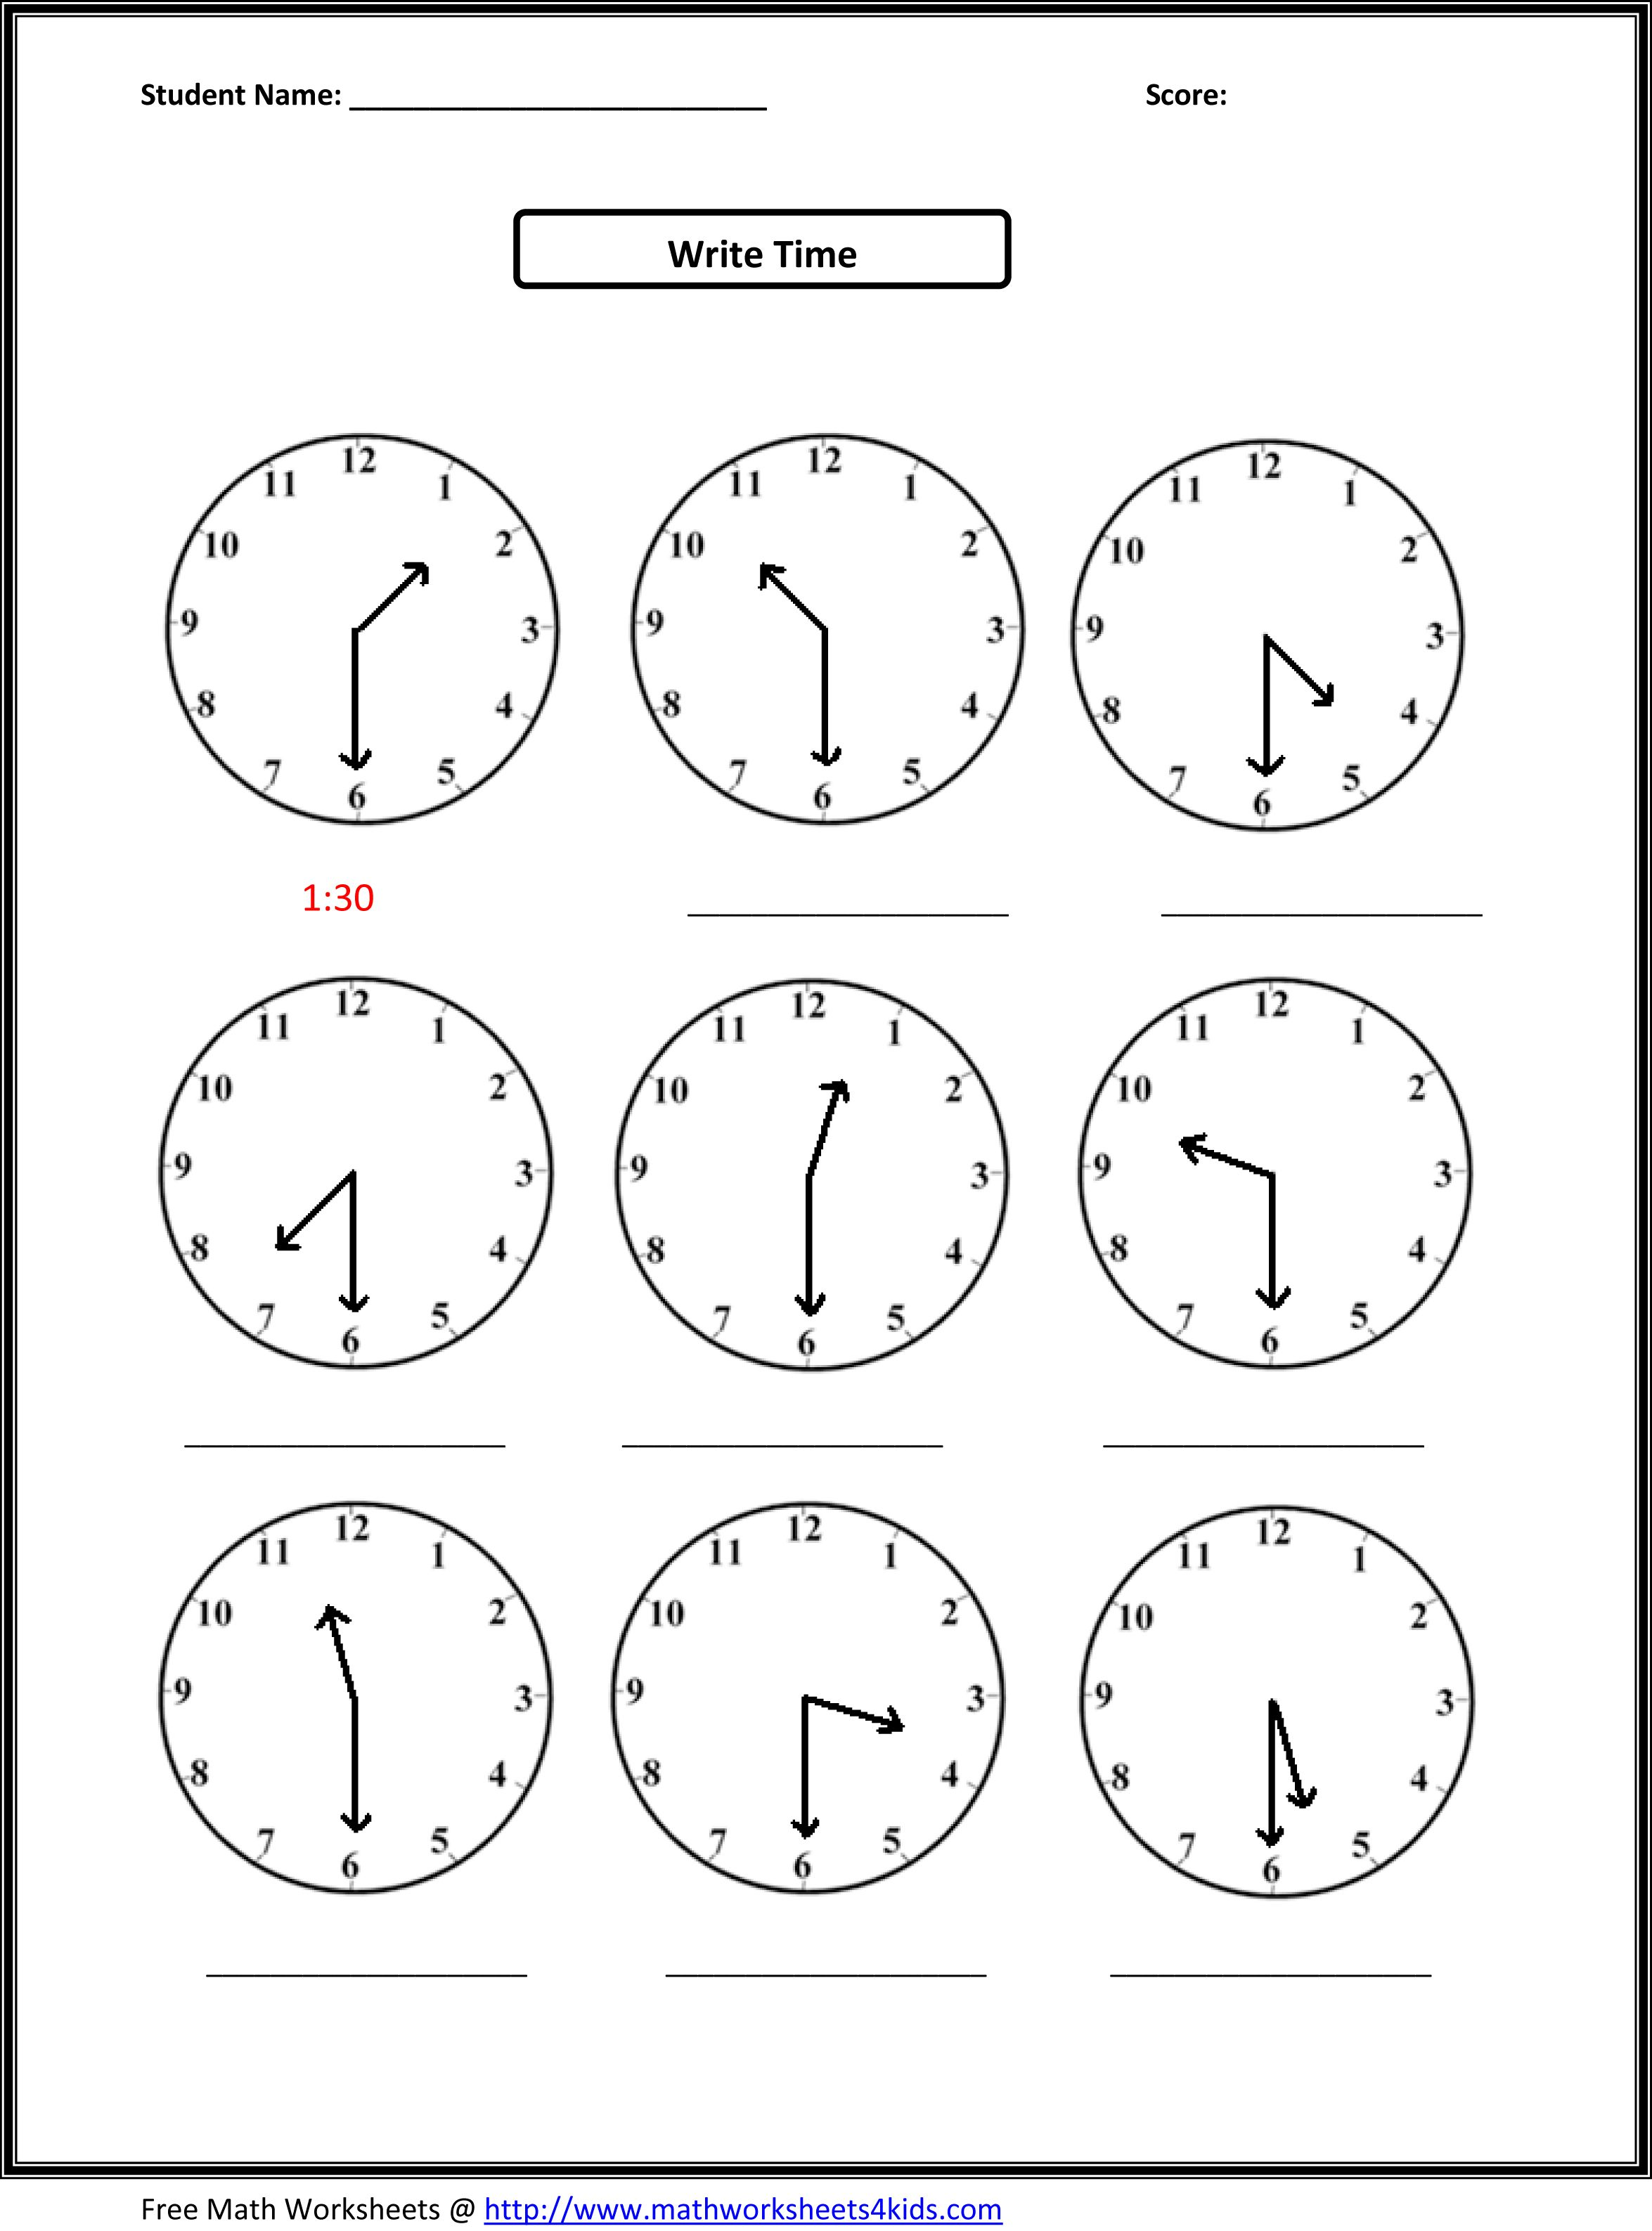 Weirdmailus  Marvelous Worksheet On Time For Grade   Reocurent With Interesting Free Printable Telling Time Worksheets Nd Grade  Reocurent With Breathtaking Fractions Worksheets For Kindergarten Also Free Circulatory System Worksheets In Addition Free Printables Kindergarten Worksheets And Column Addition Worksheets Year  As Well As Fractions Decimals And Percentages Worksheet Additionally Primary  Science Worksheets From Reocurentcom With Weirdmailus  Interesting Worksheet On Time For Grade   Reocurent With Breathtaking Free Printable Telling Time Worksheets Nd Grade  Reocurent And Marvelous Fractions Worksheets For Kindergarten Also Free Circulatory System Worksheets In Addition Free Printables Kindergarten Worksheets From Reocurentcom